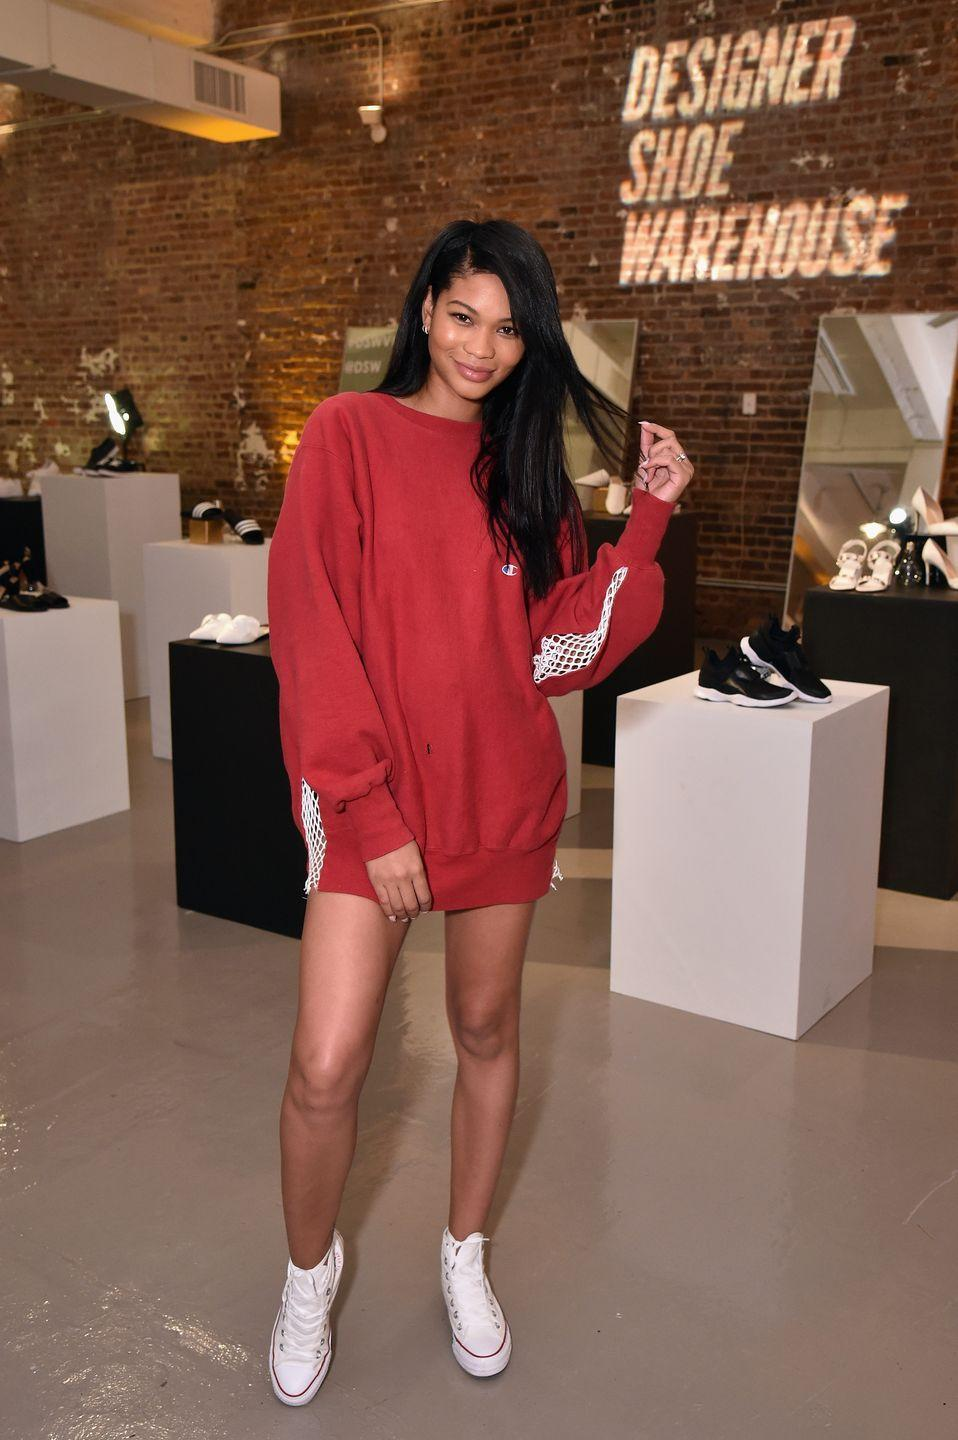 <p>Everyone loves this styling trick, from Ariana Grande to Chanel Iman. A massive hoodie and sneakers is the easiest outfit equation for the first day. </p>